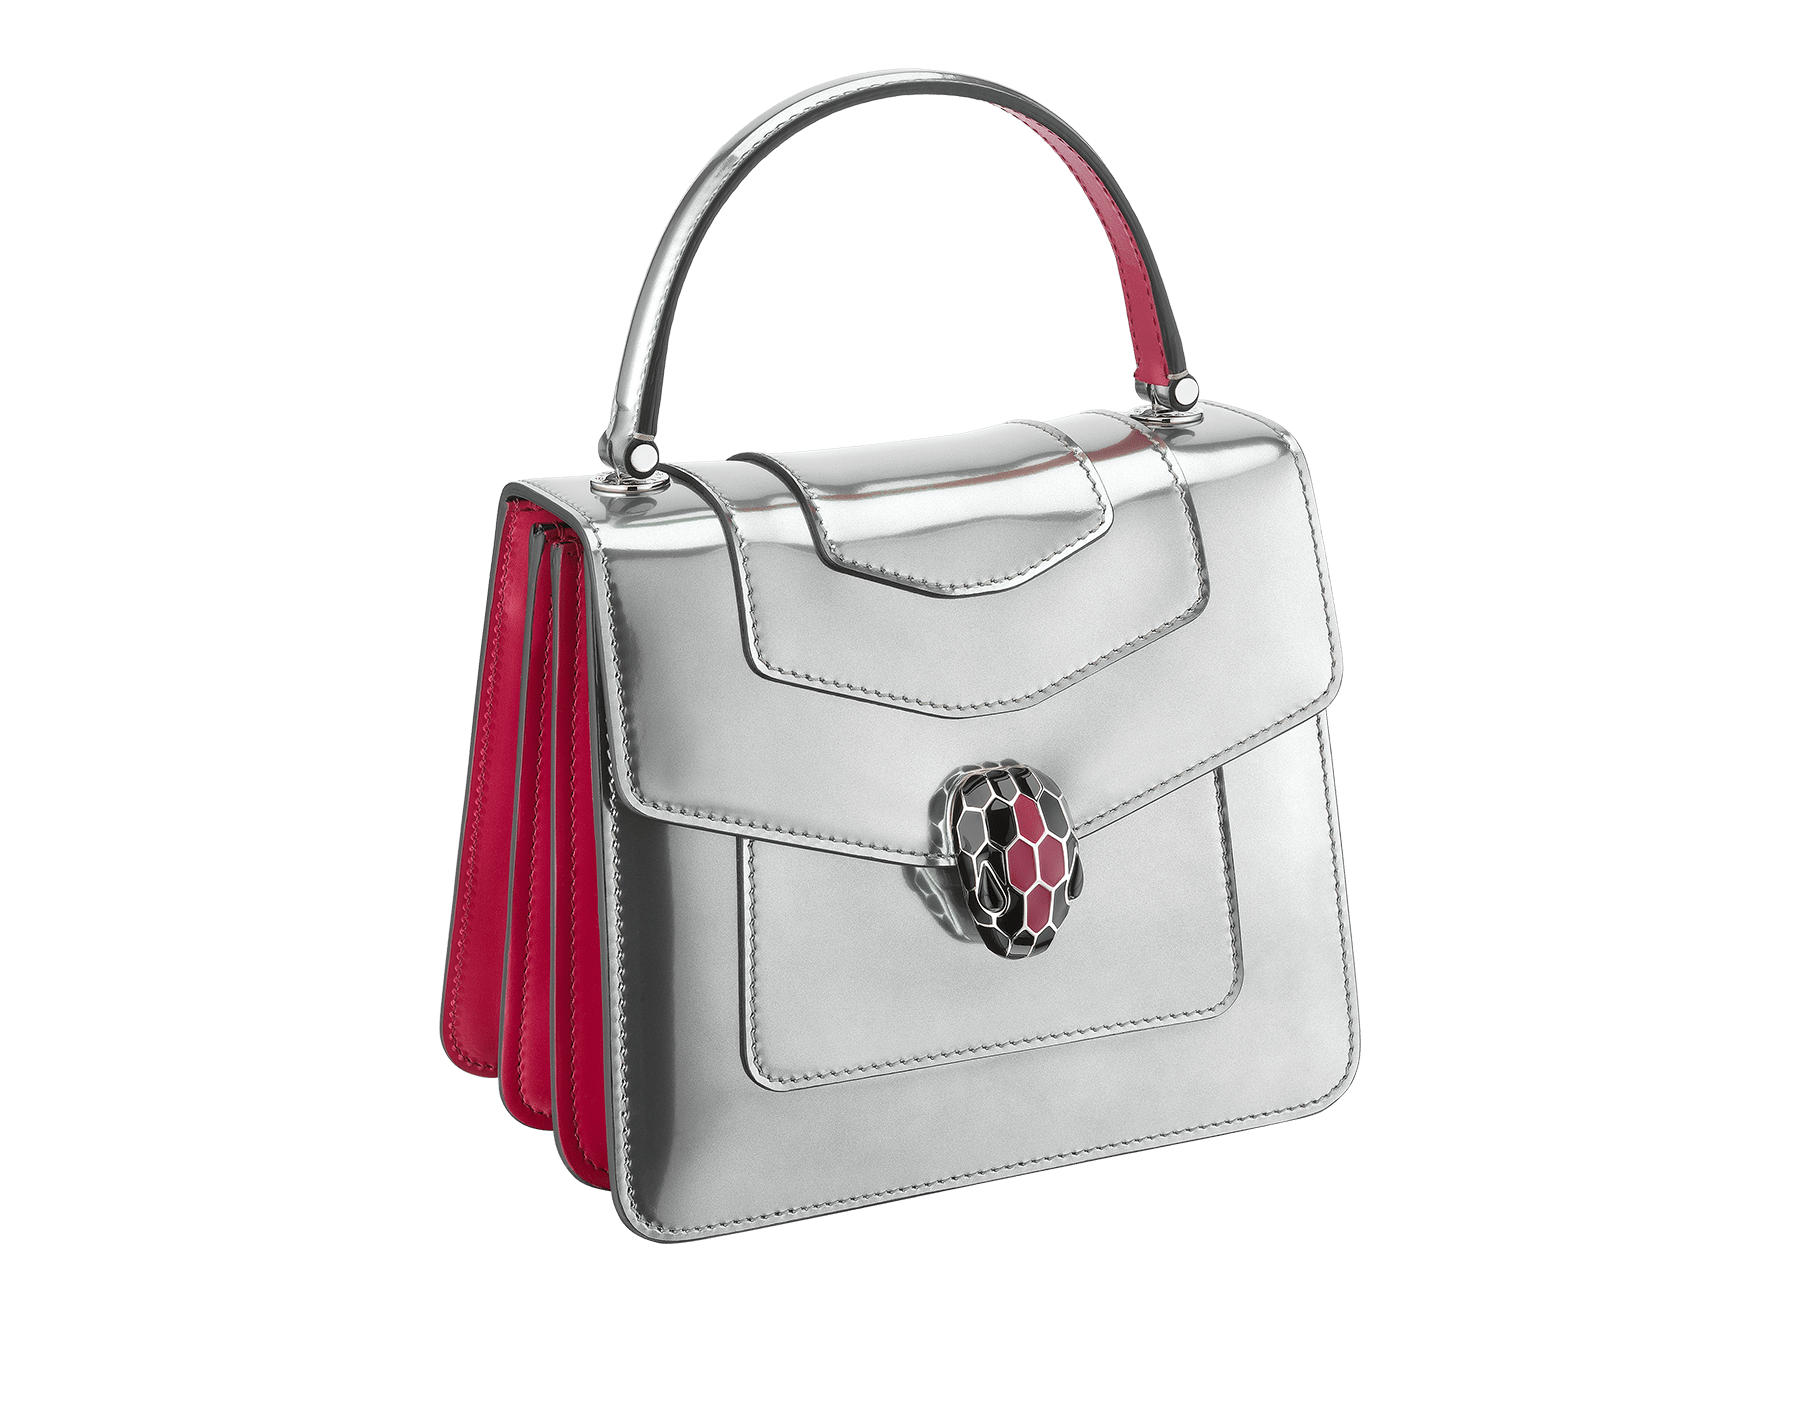 """Serpenti Forever"" crossbody bag in silver brushed metallic calf leather body and jazzy tourmaline calf leather sides. Iconic snakehead closure in palladium plated brass enriched with black and jazzy tourmaline enamel and black onyx eyes. 287122 image 2"